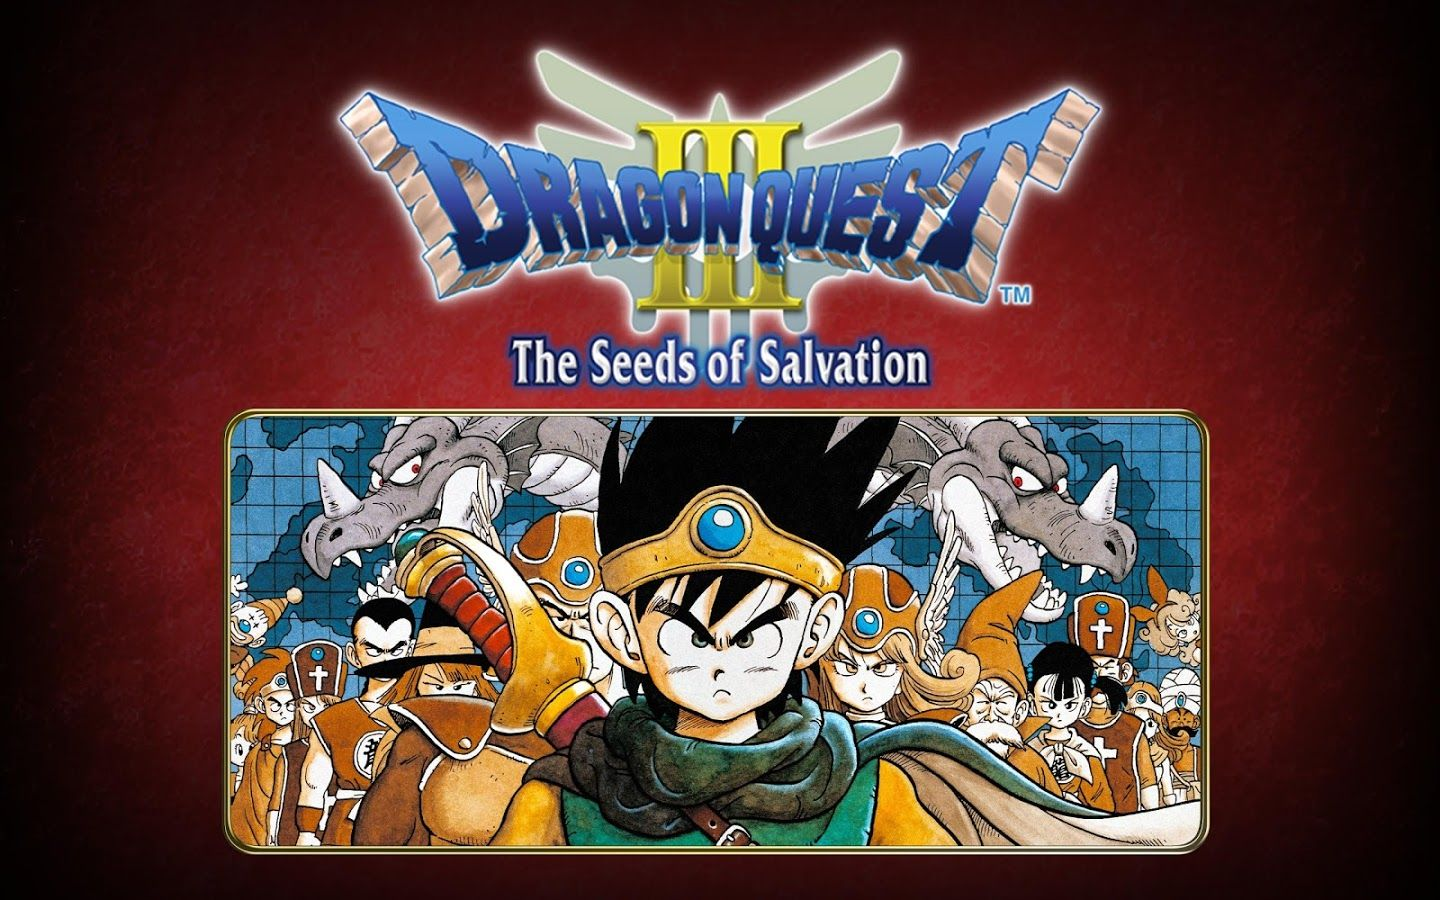 Dragon Quest Iii The Seeds Of Salvation Features An Dragon Quest Pokemon Rich Fantasy